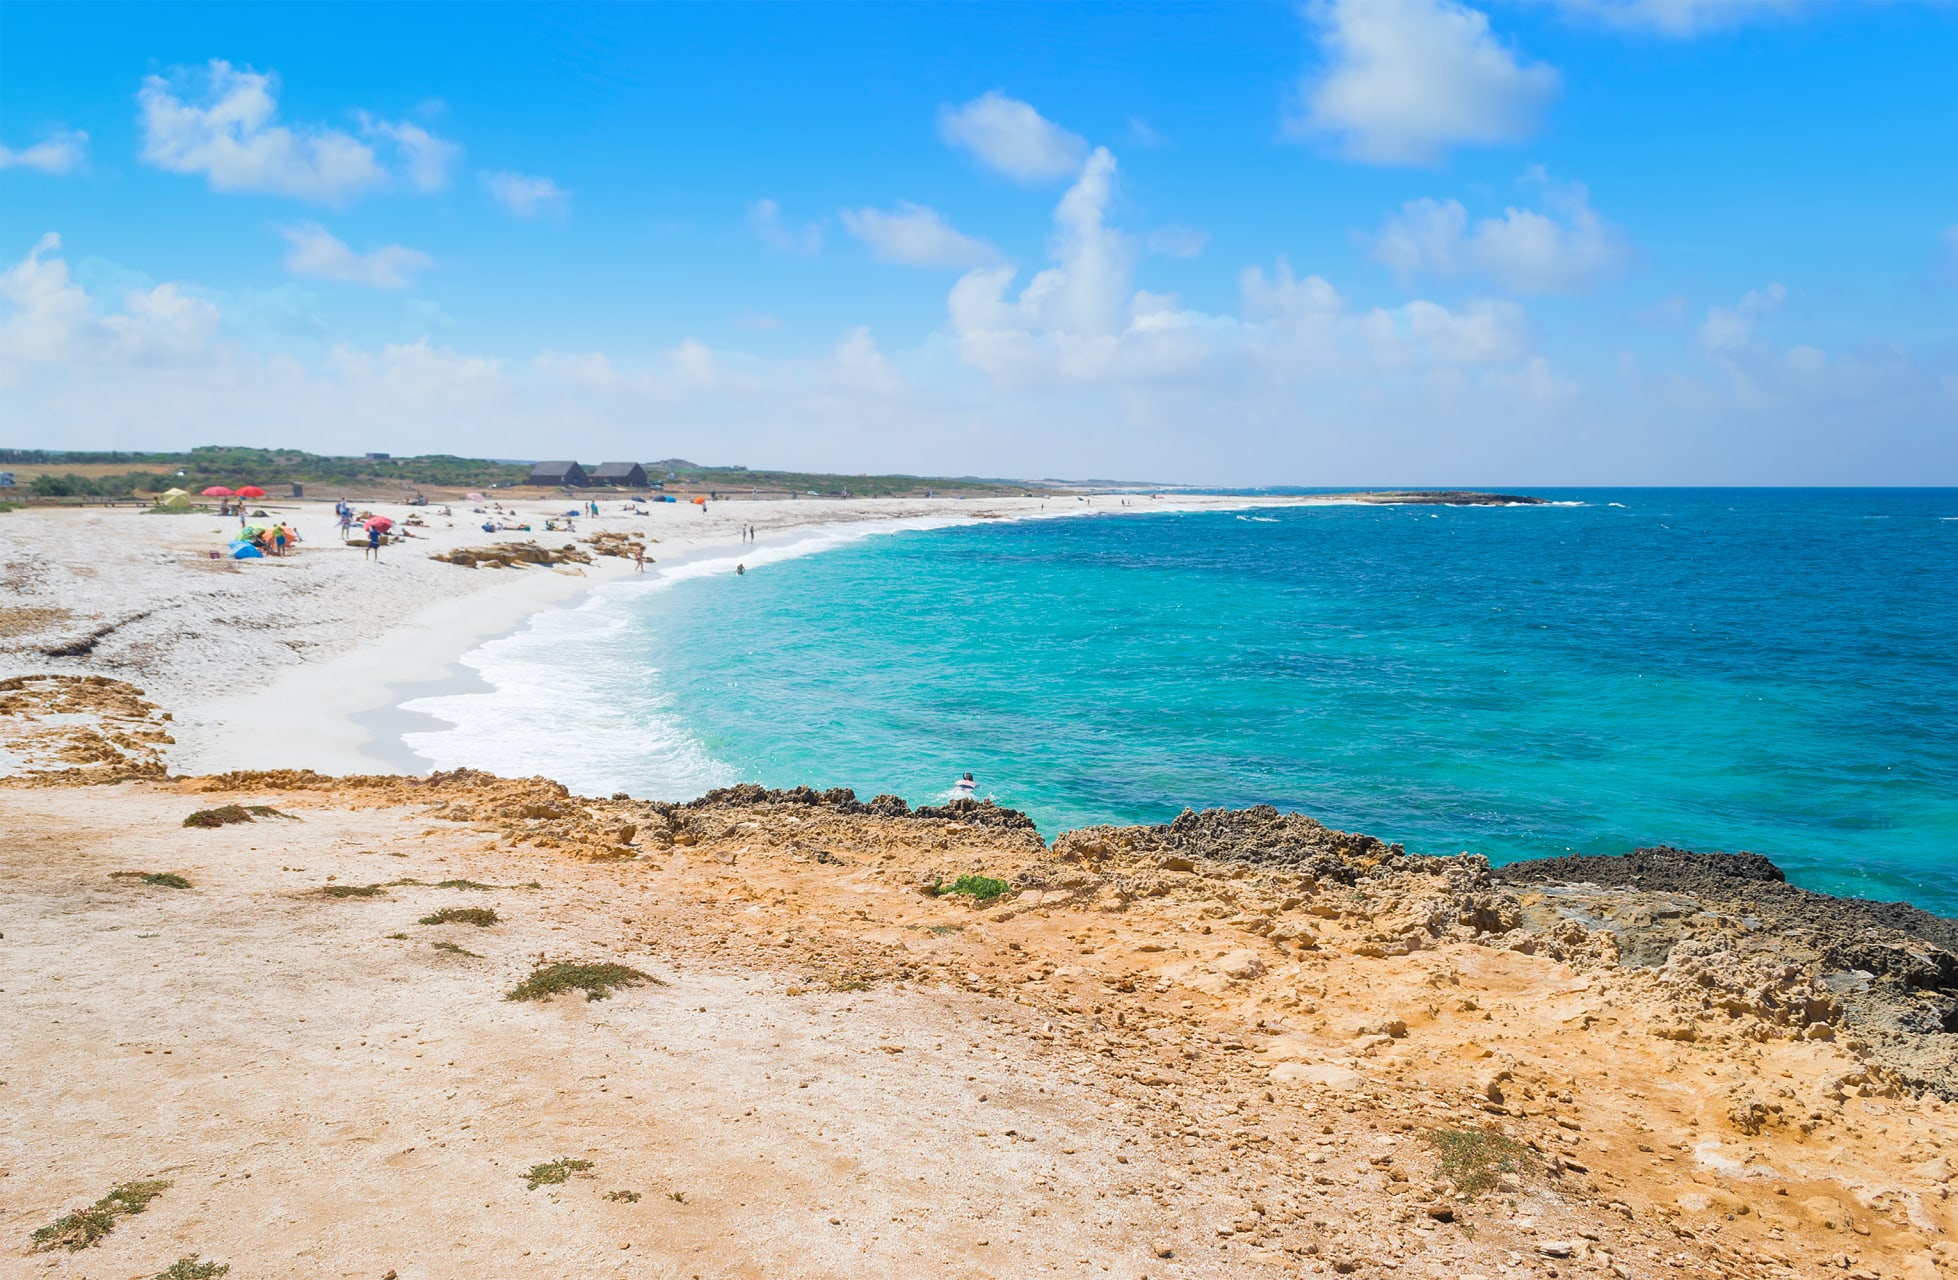 Sardinia - Crystal Water, White Sand and Golden Rocks, Welcome to Sardinia's West Coast